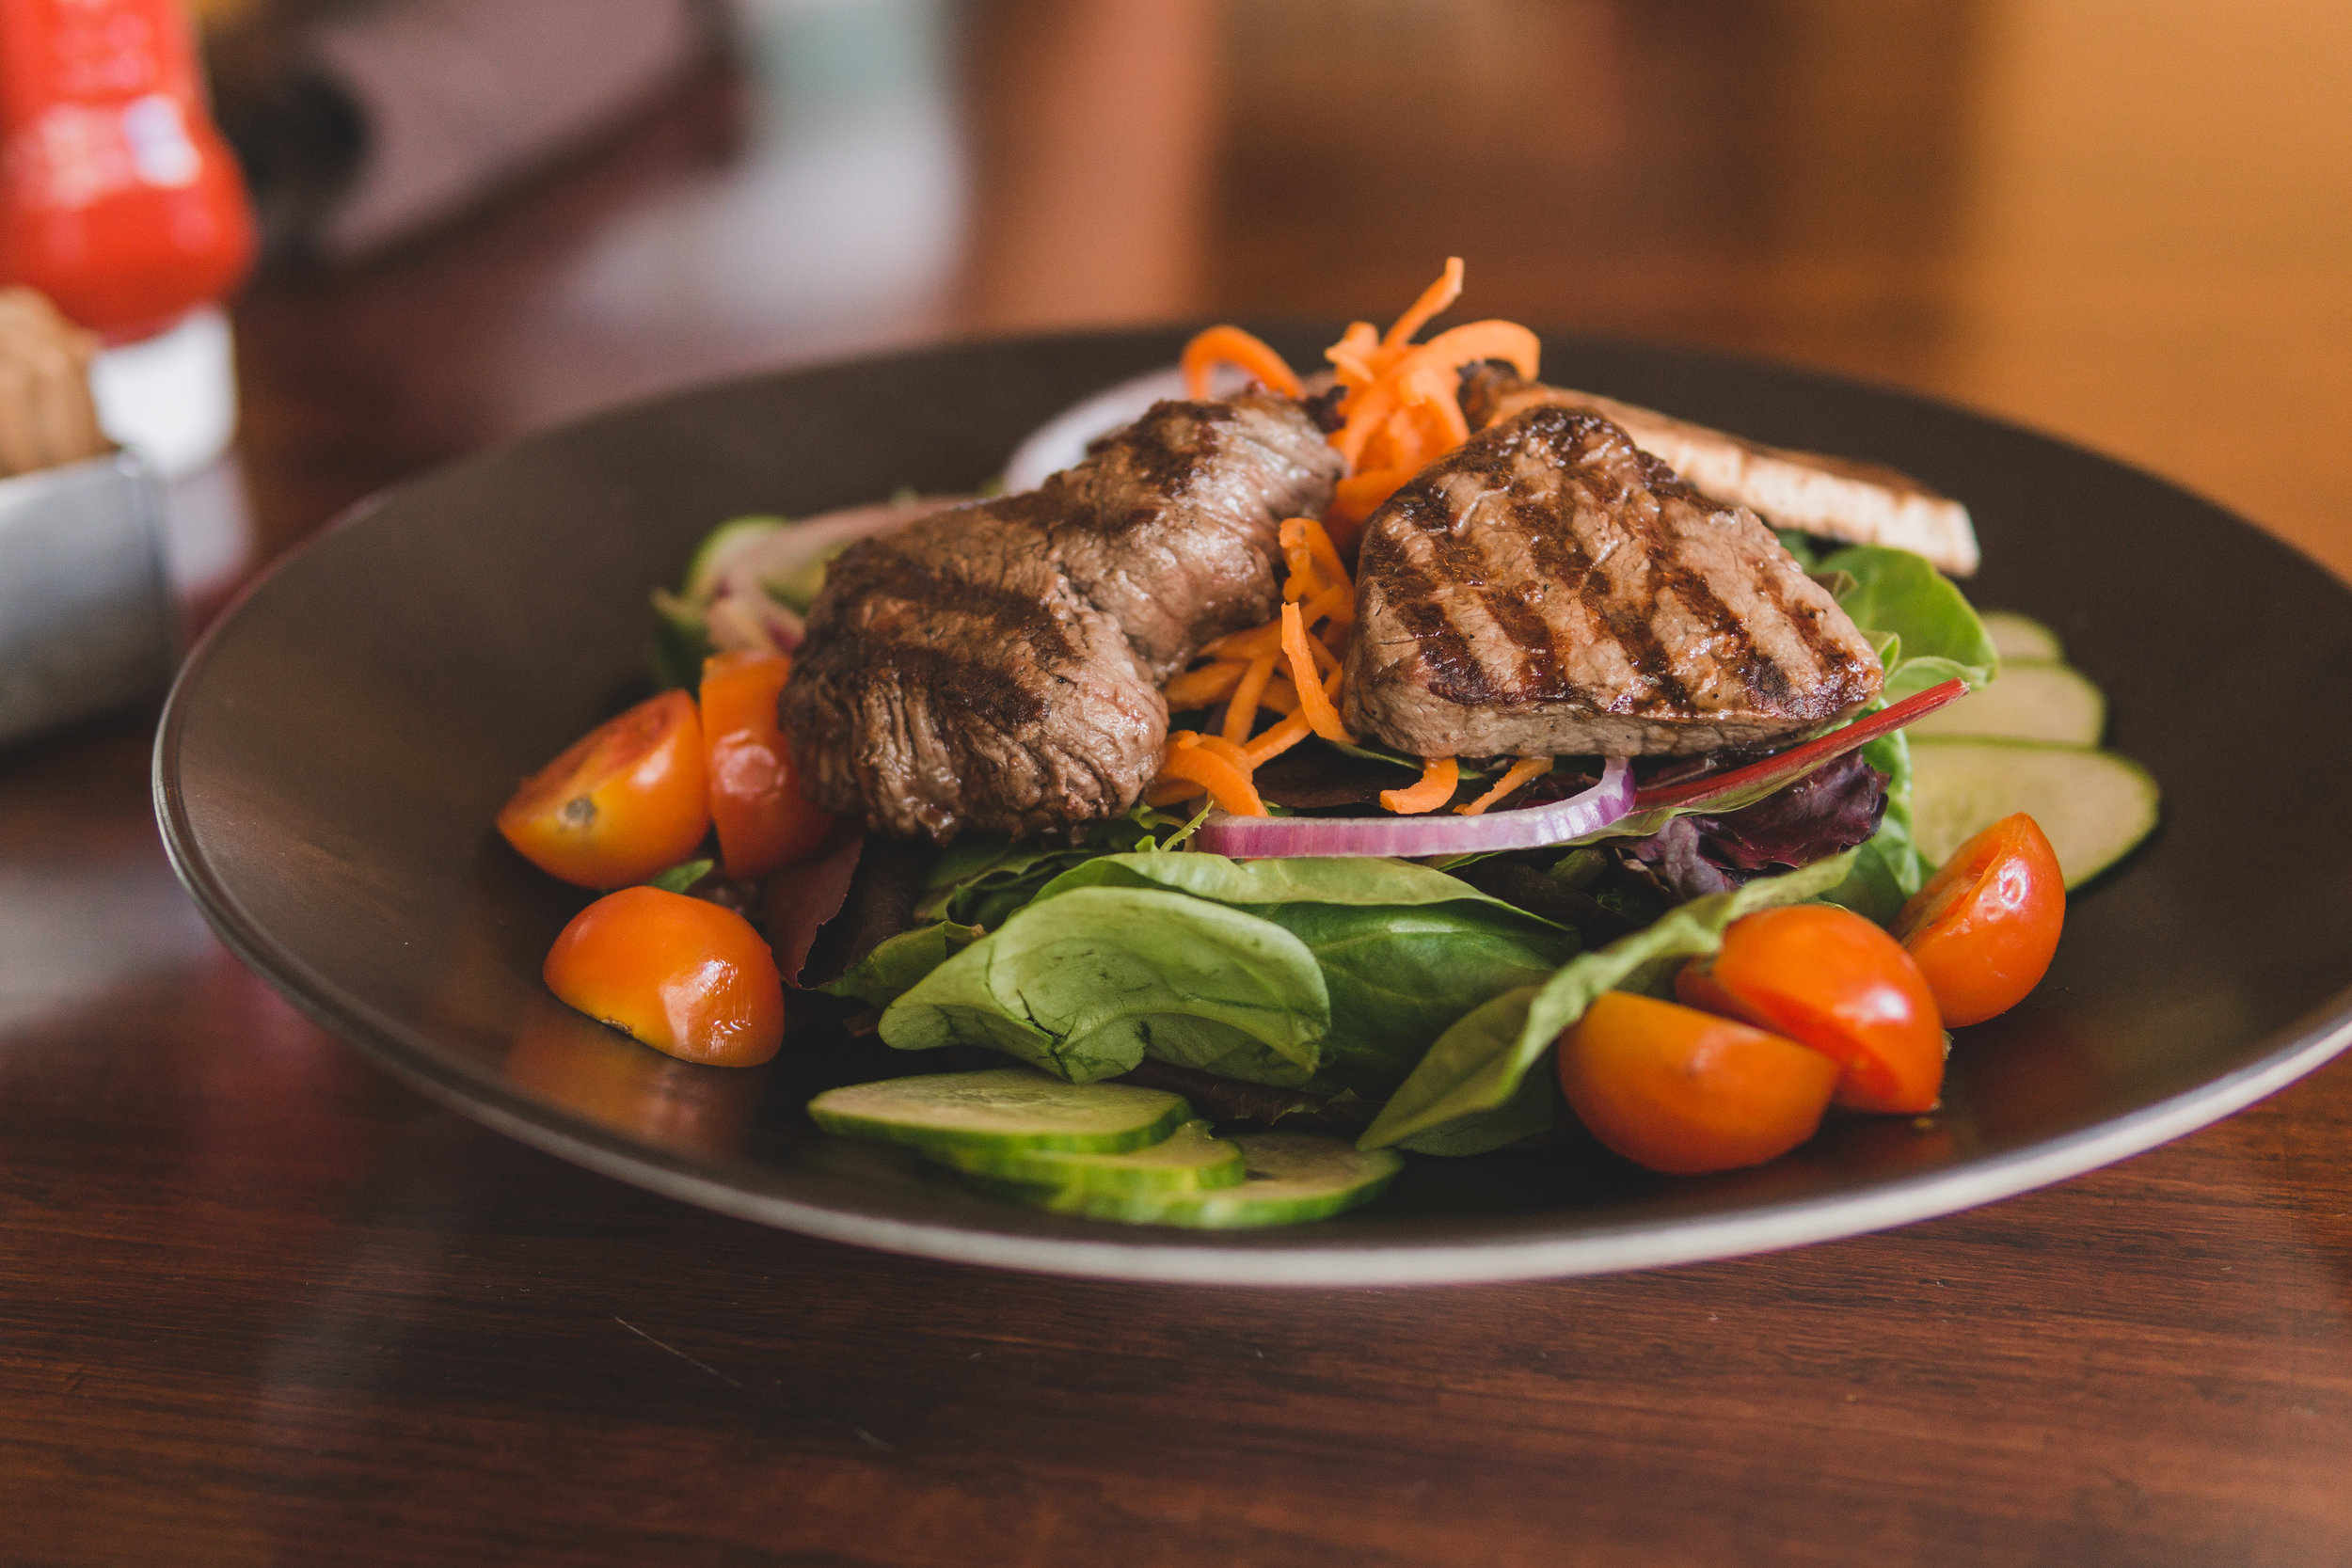 Farmer's Steak Salad: Filet medallions, mixed greens, tomatoes, carrots, onions, cucumber & balsamic vinaigrette dressing